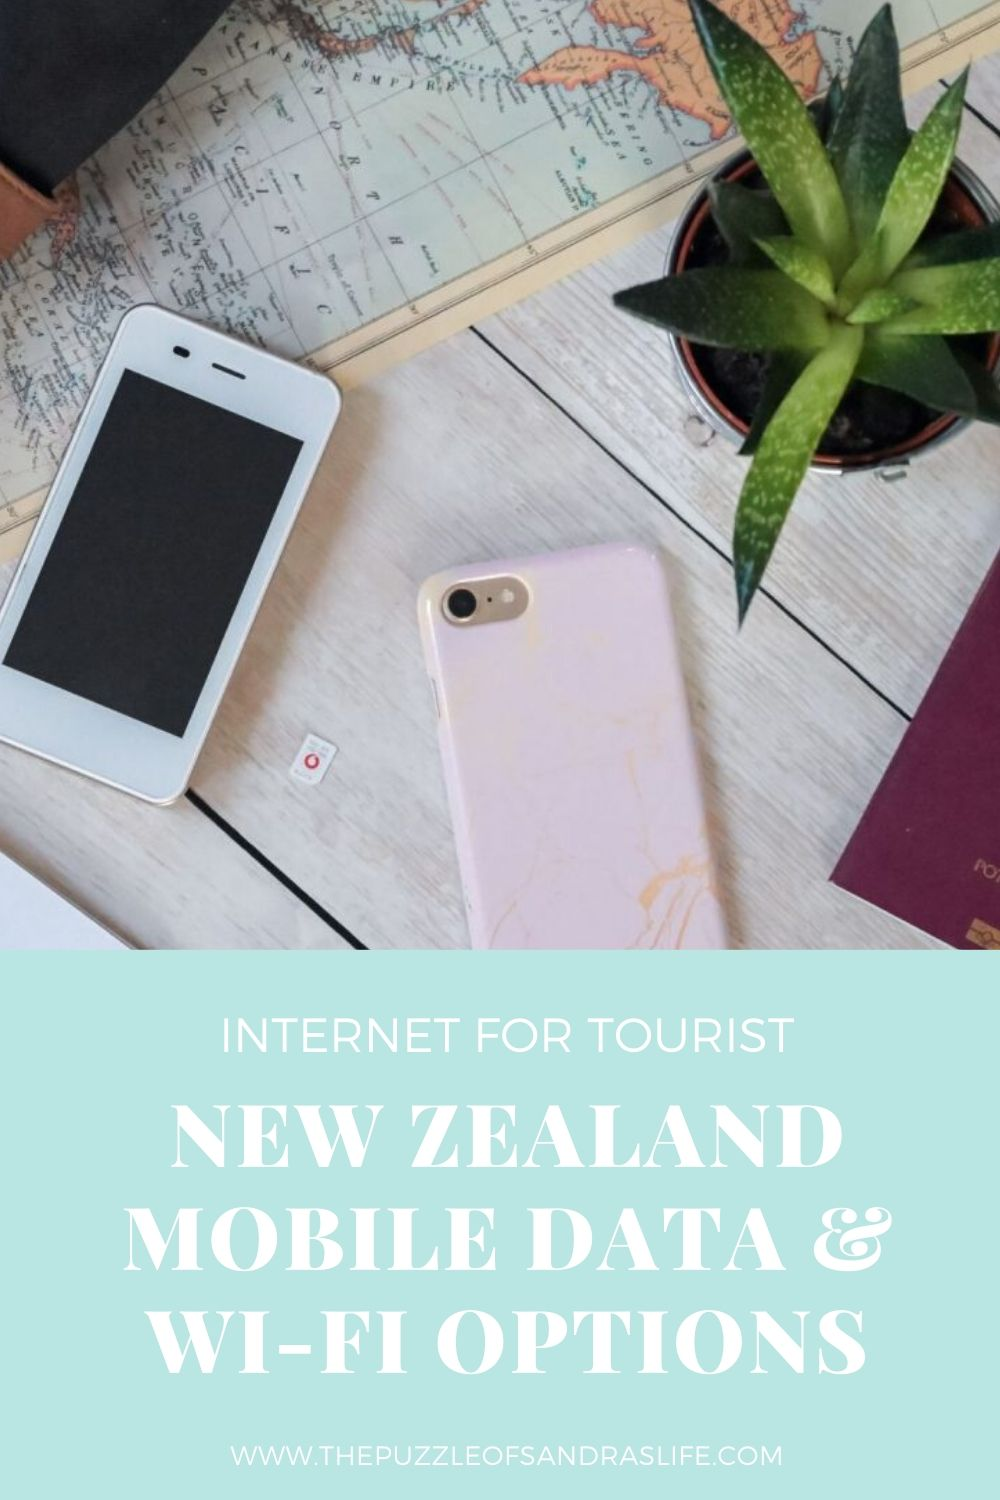 Internet in New Zealand: Mobile Data & WiFi for Tourists